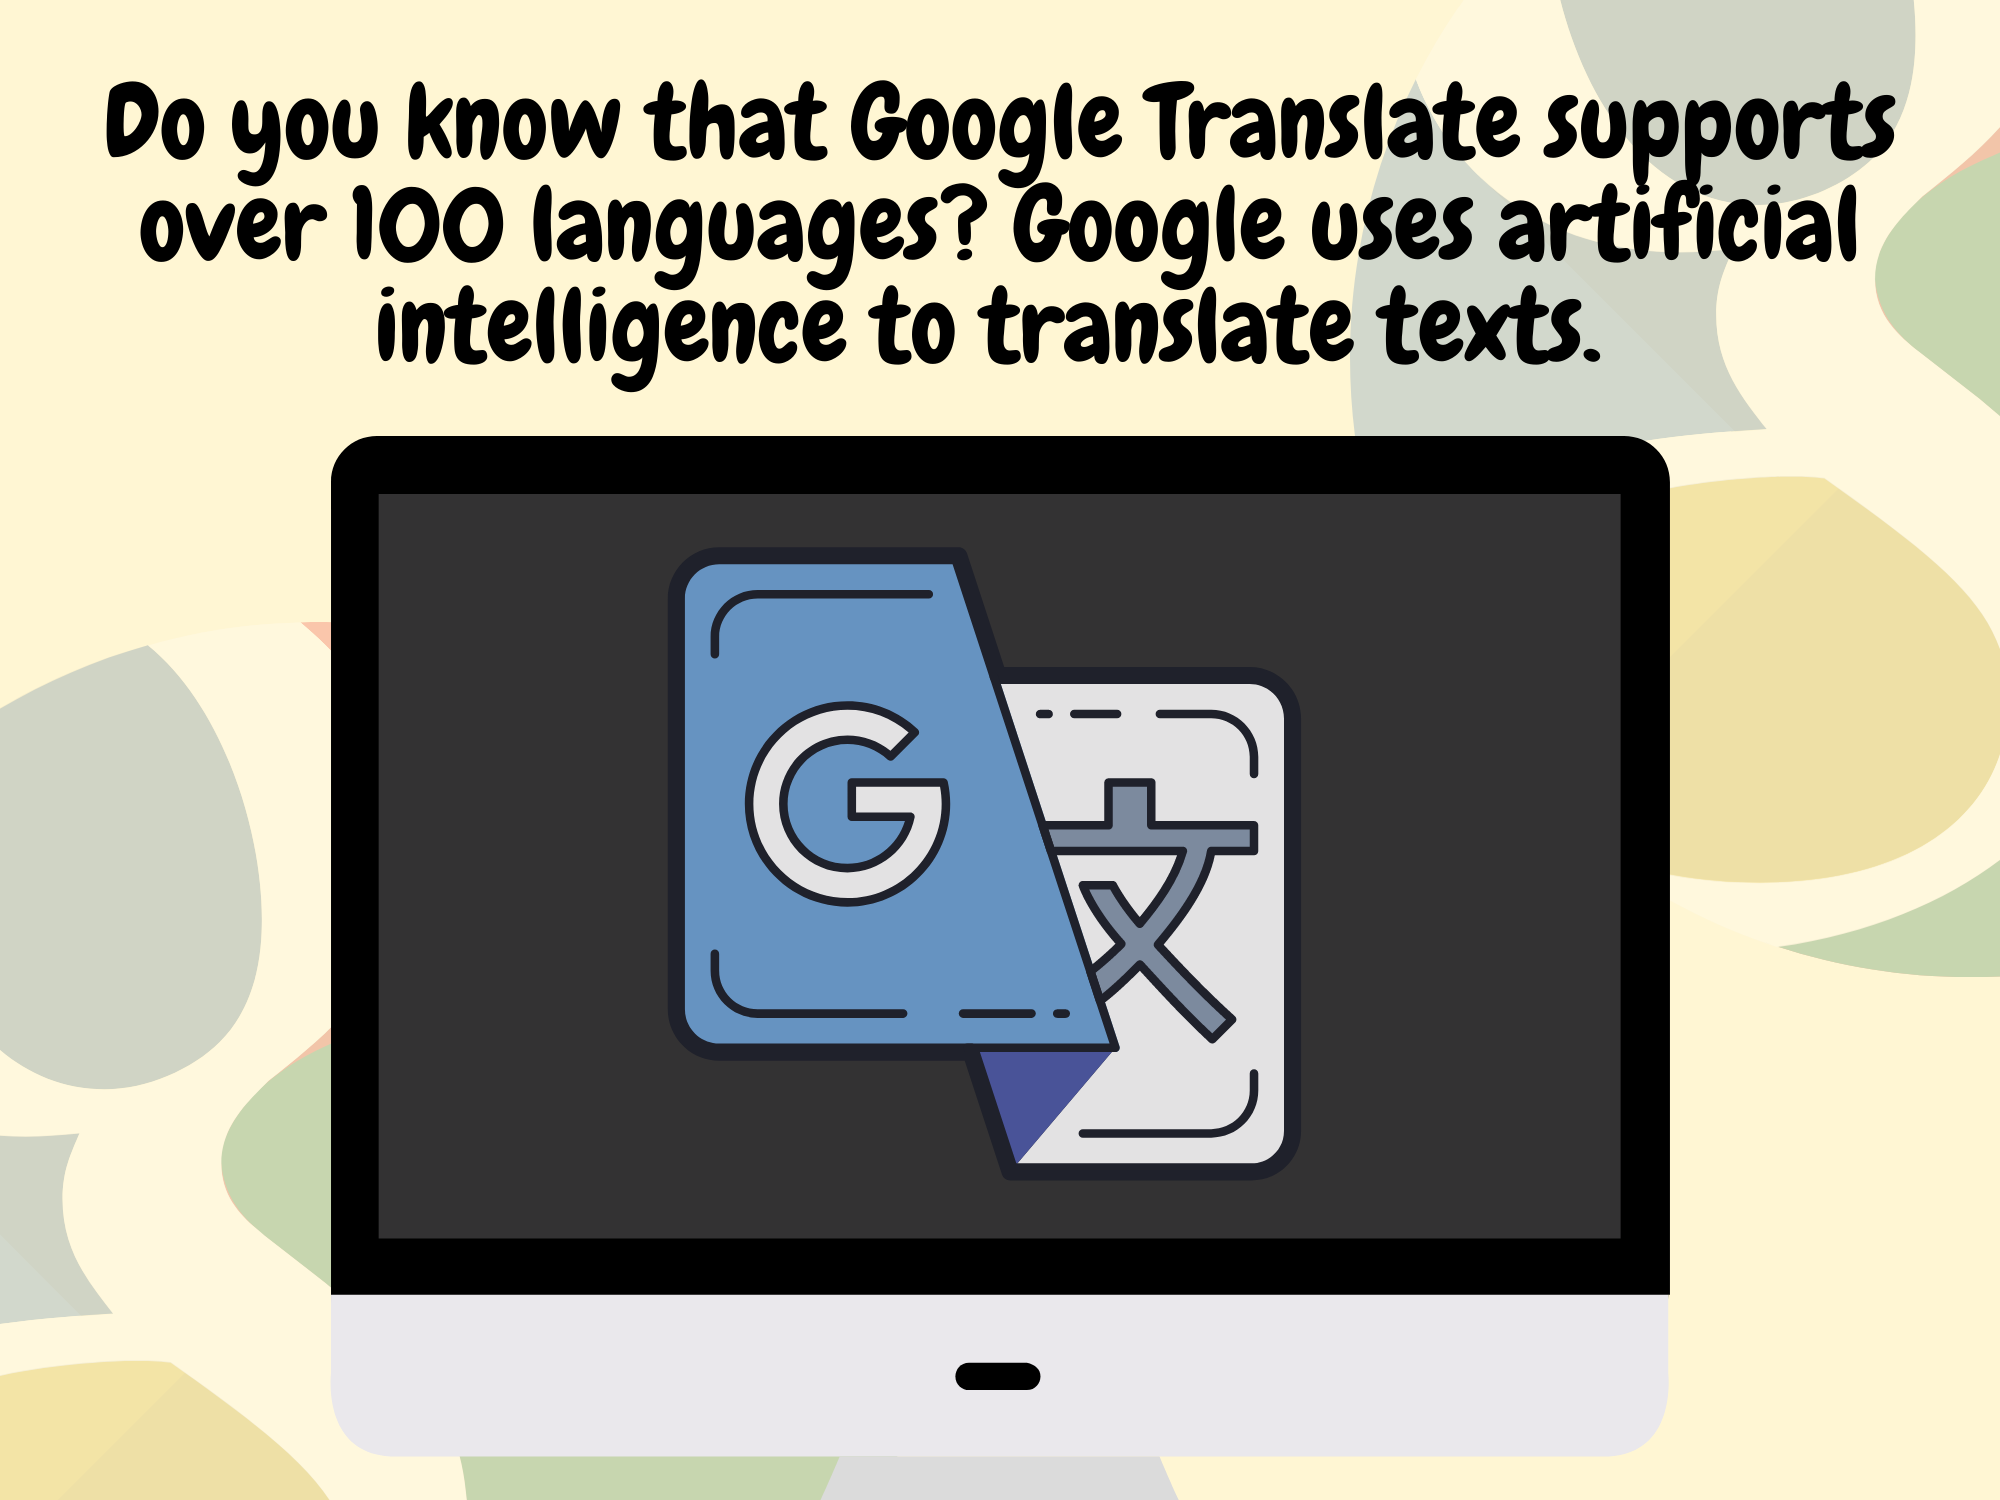 Do-you-know-that-Google-Translate-supports-over-100-languages-Google-uses-artificial-intelligence-to